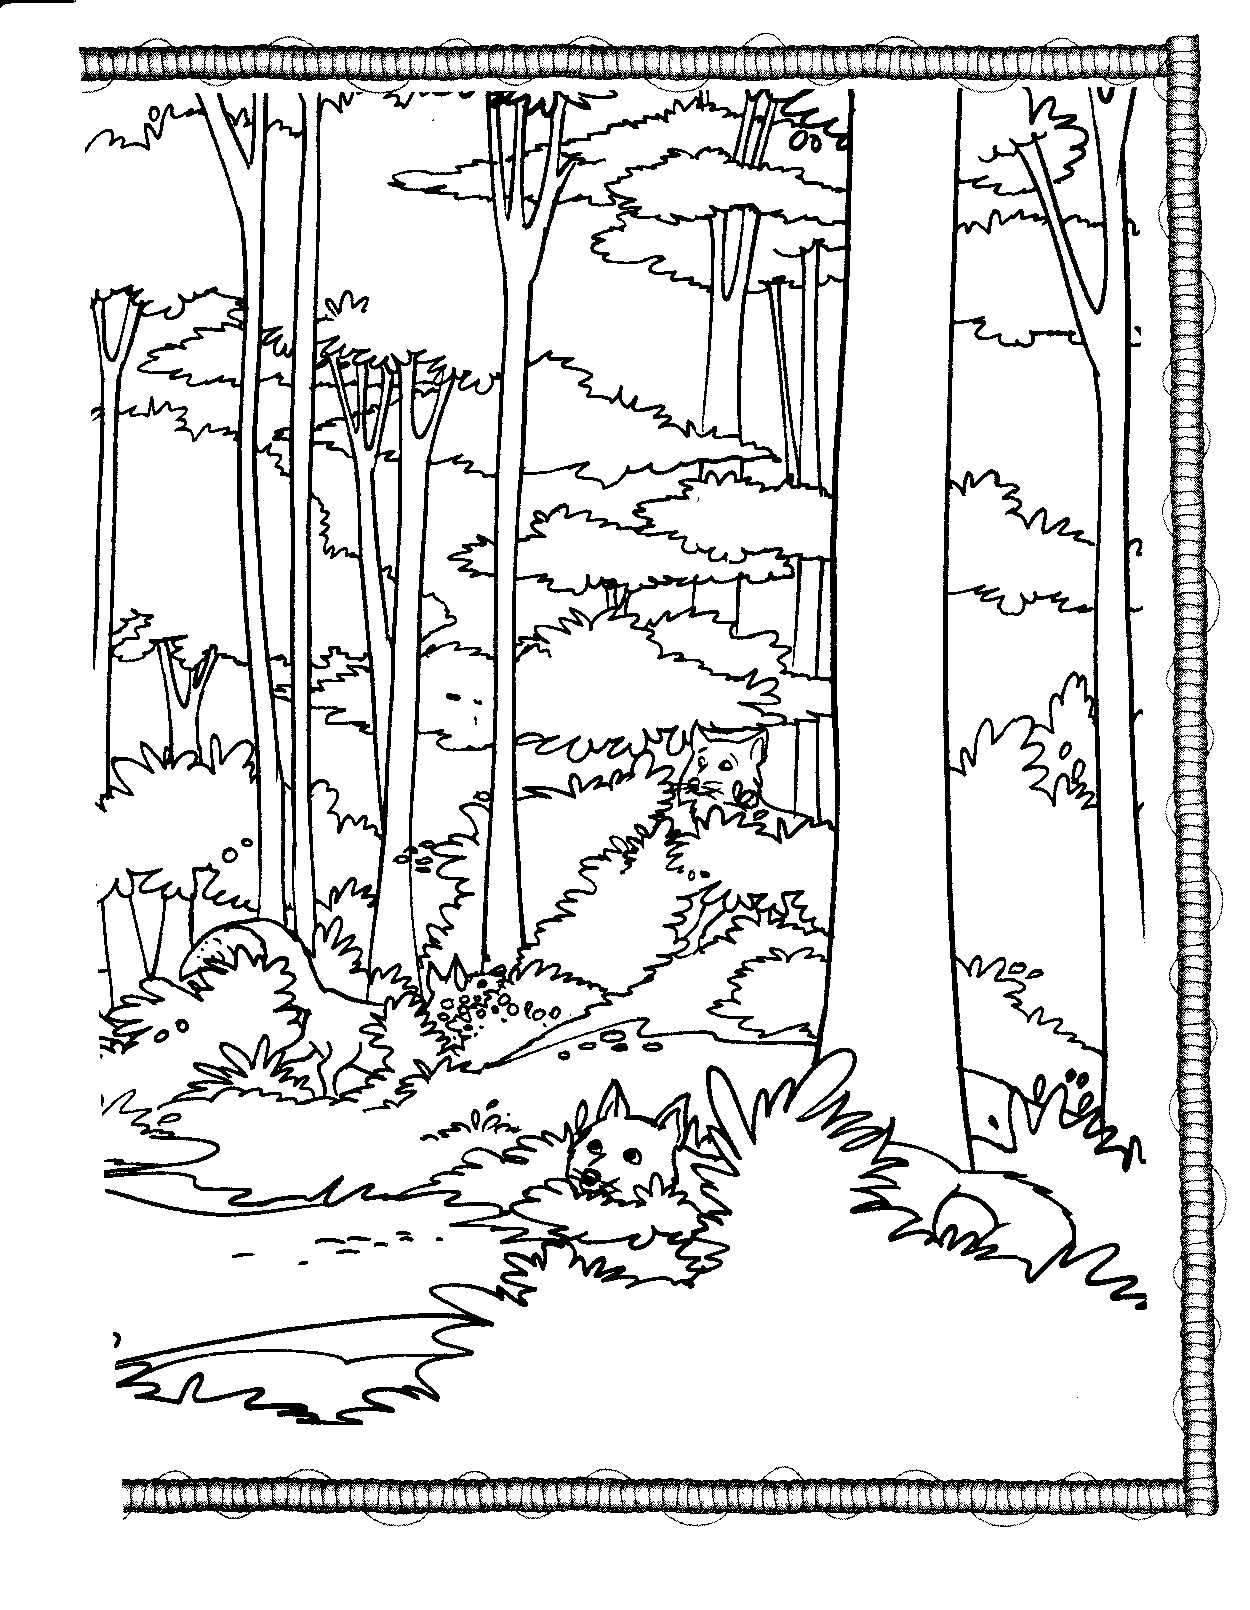 Ecosystems Regions Forest Section 14 Coloring Pages Forest Coloring Pages Colorful Landscape